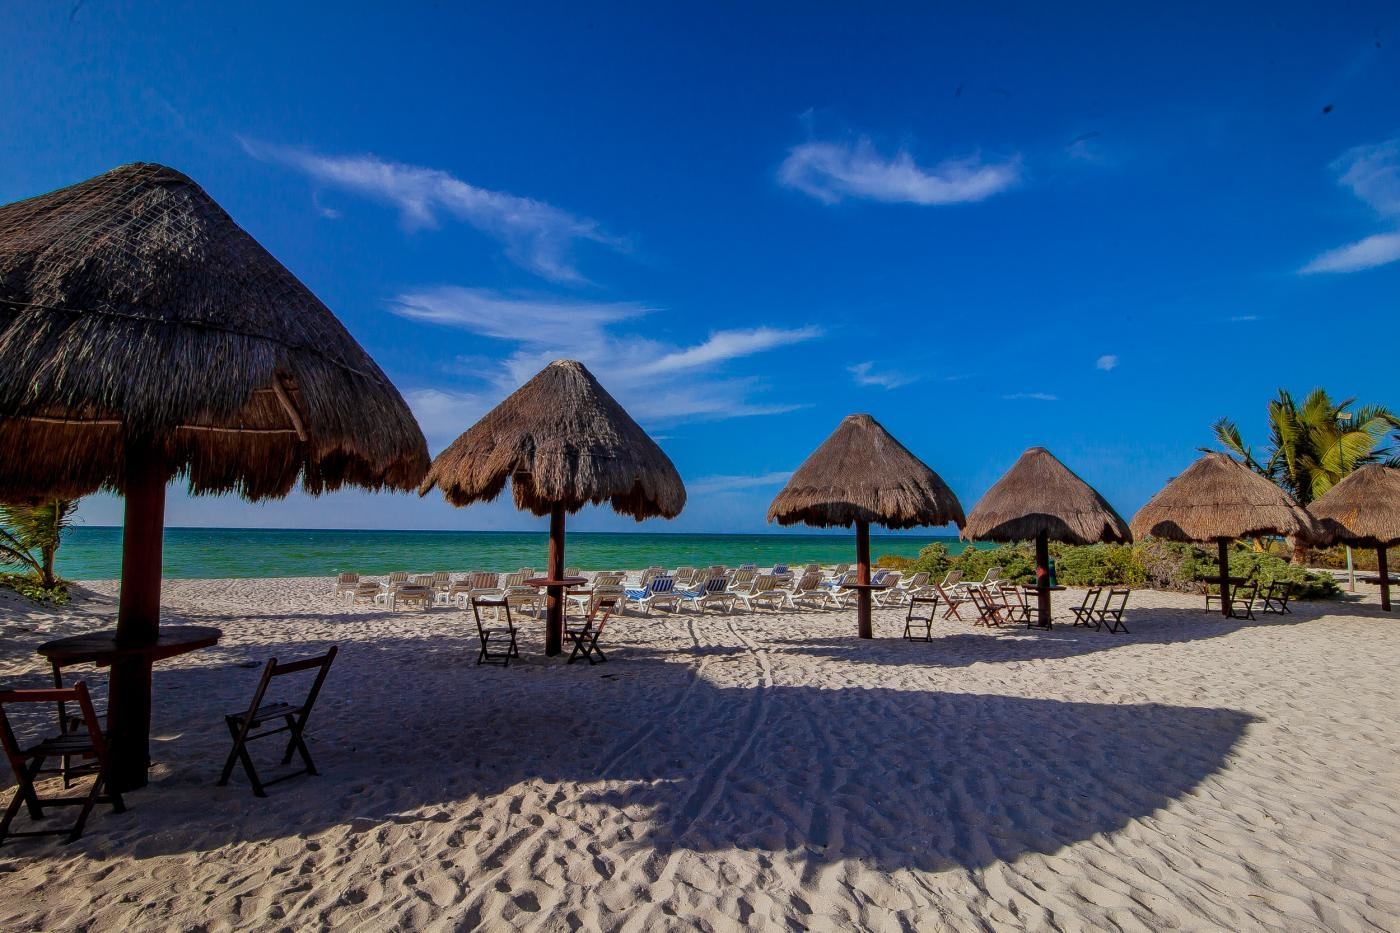 Best Things to do in Progreso, Mexico